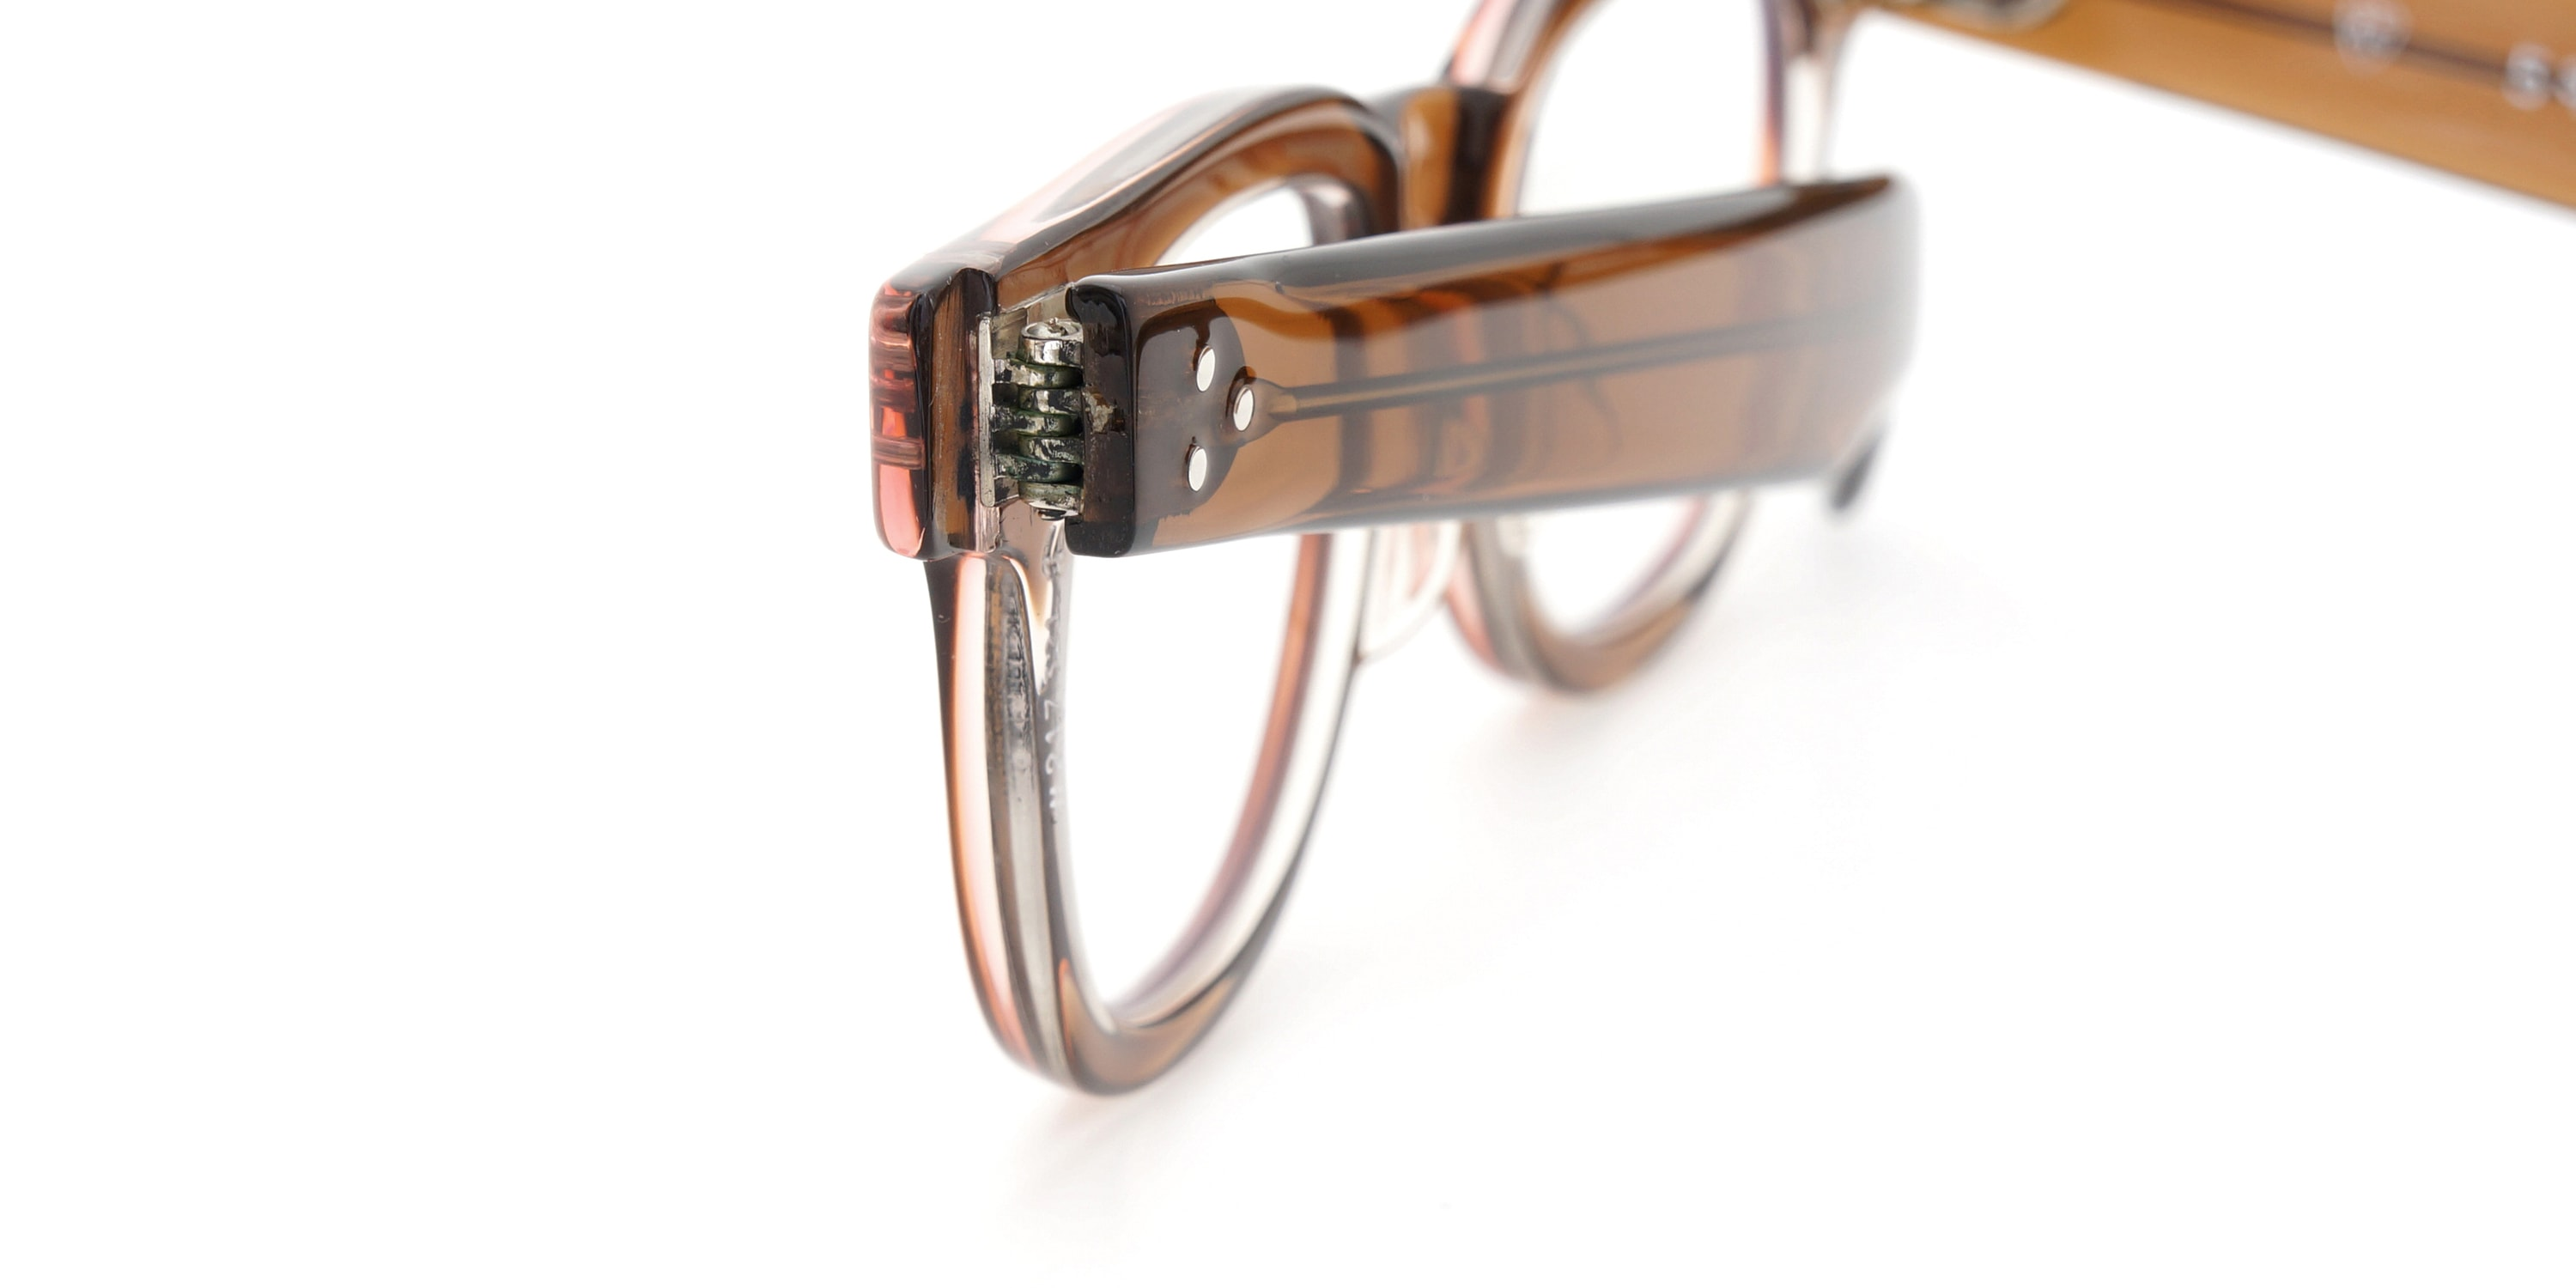 The Spectacle メガネ 1950s-70s TART OPTICAL FDR (FRAME USA) BROWN 44-22 イメージ16